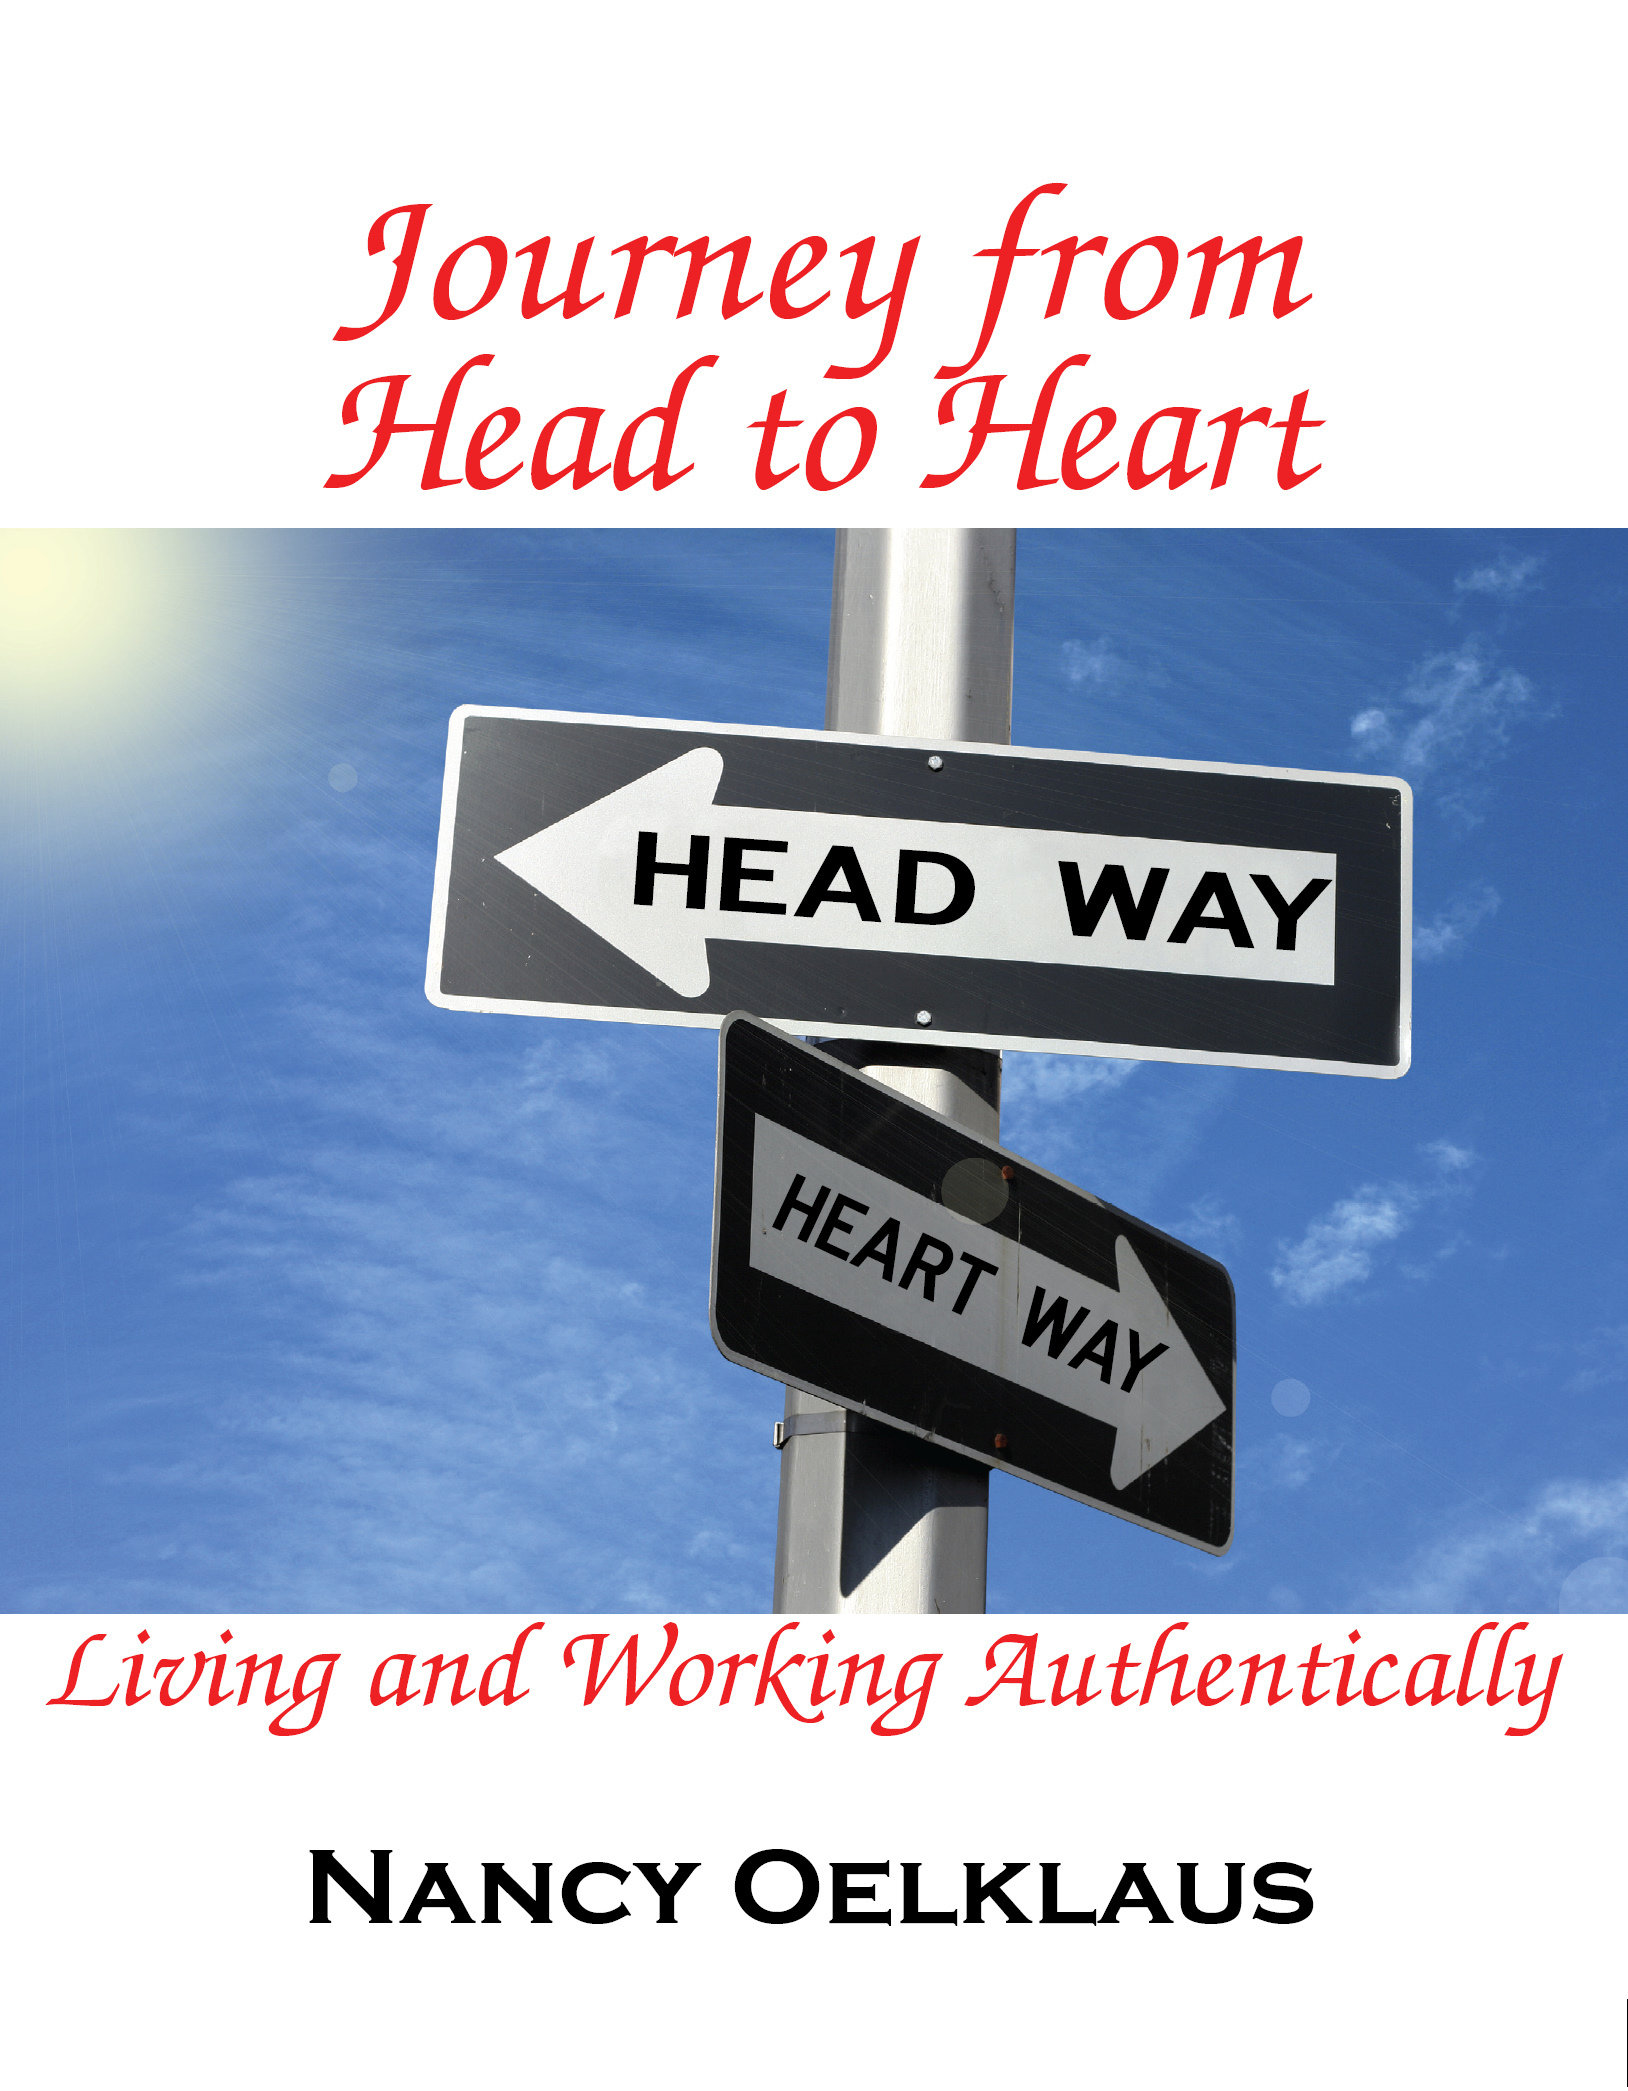 Journey from Head to Heart: Living and Working Authentically 978-1-932690-43-9